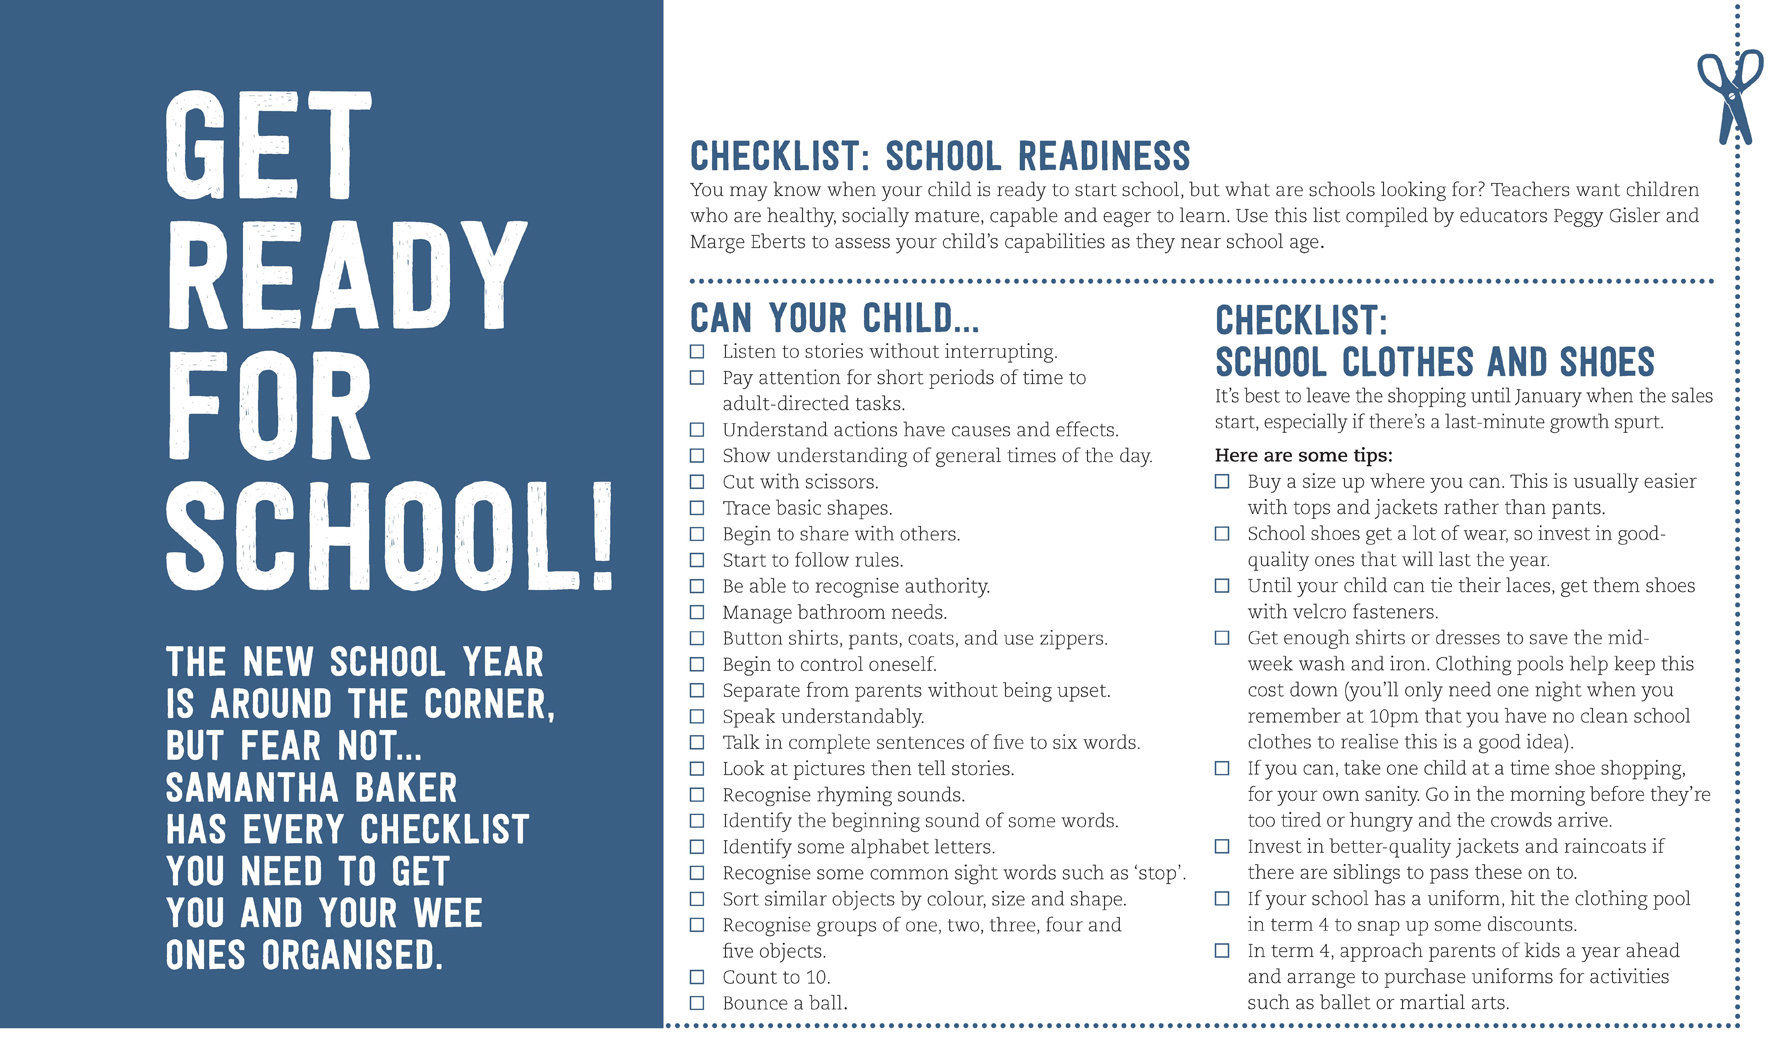 School readiness checklist